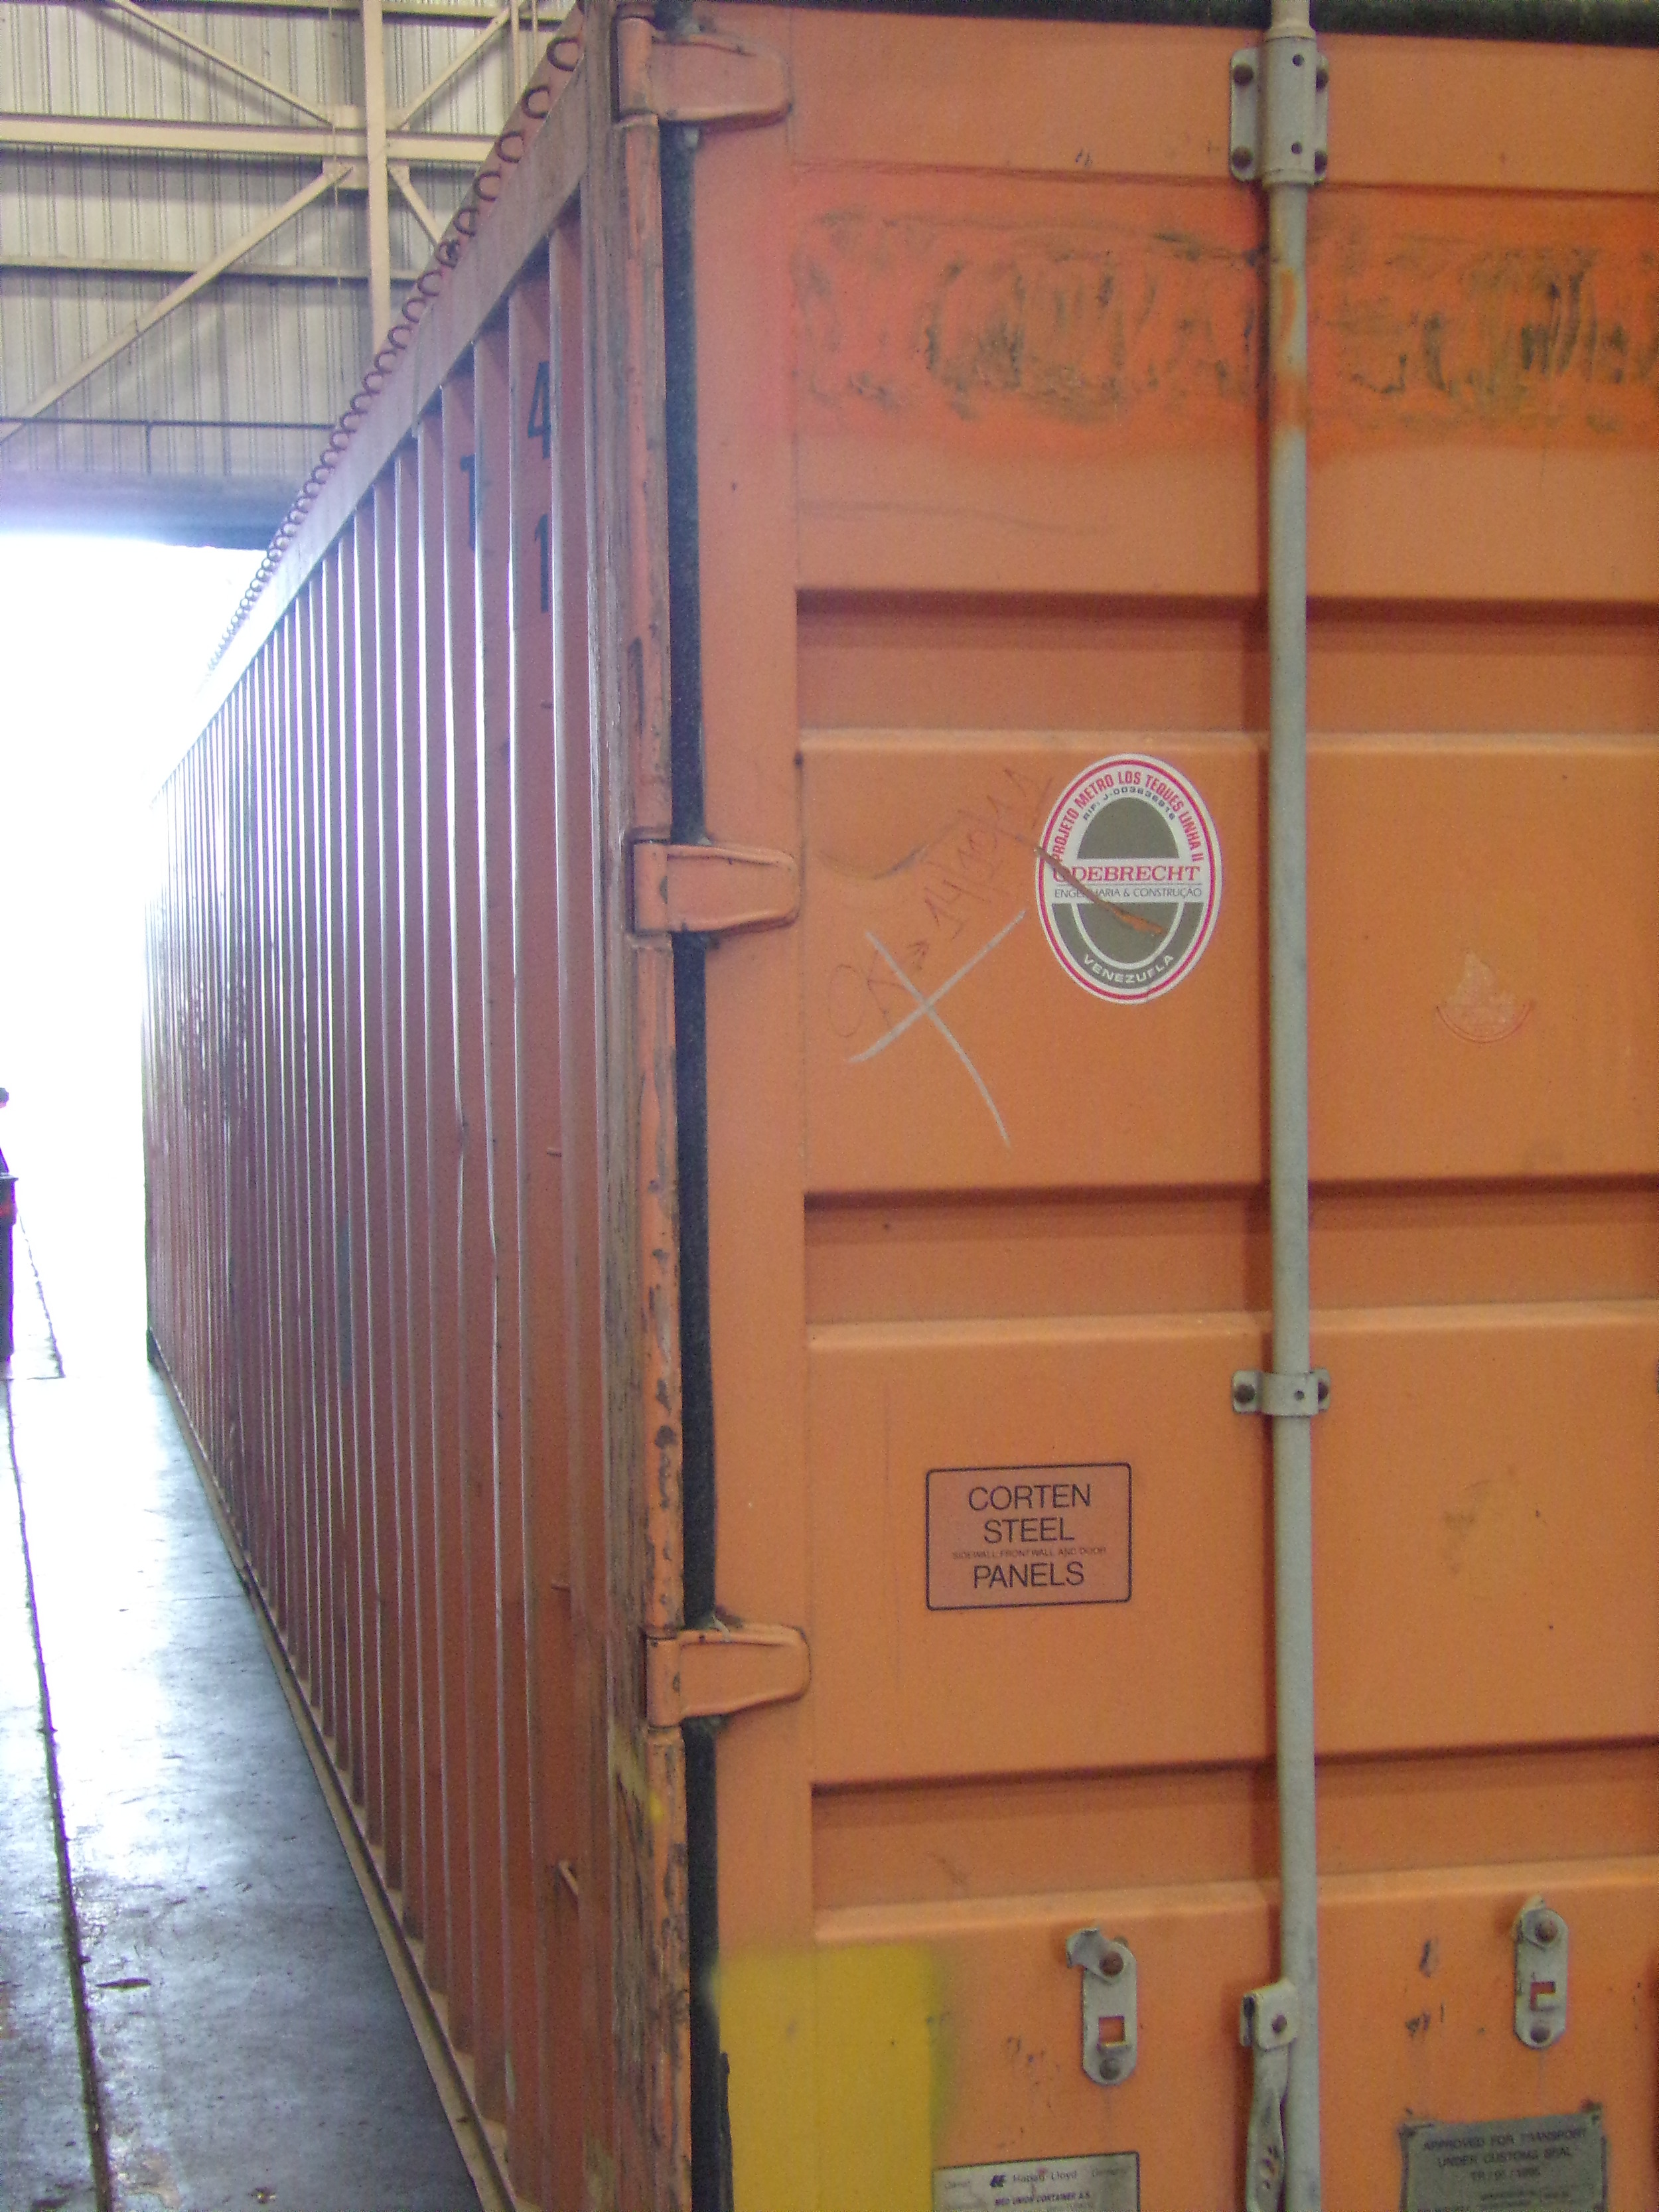 Side of container